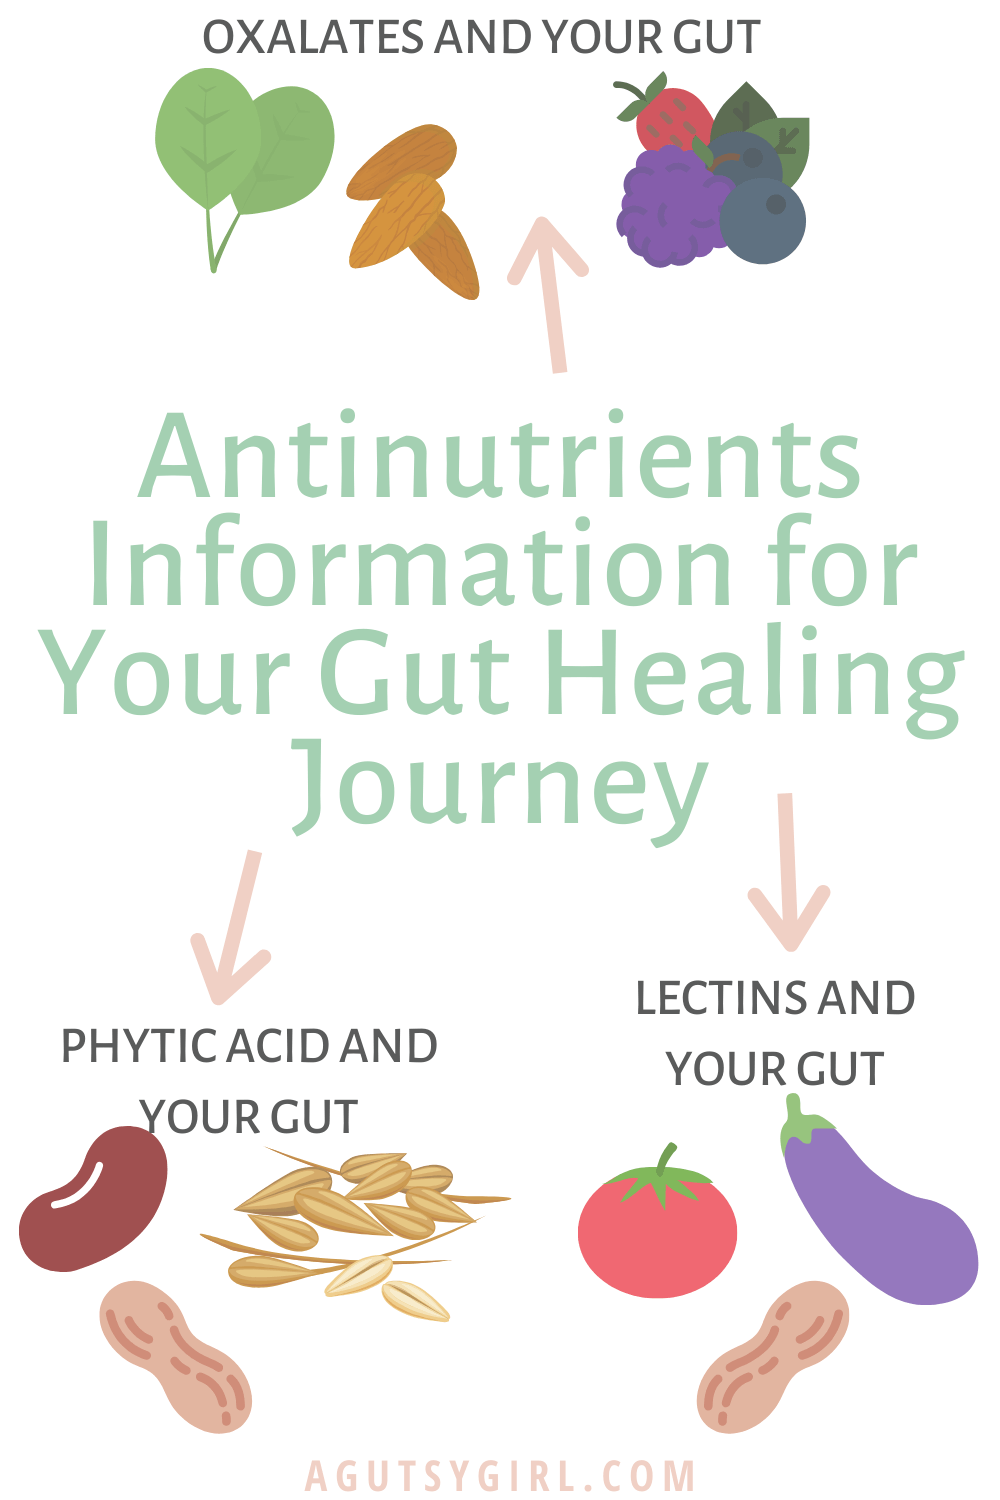 Antinutrients Information for Your Gut Healing Journey agutsygirl.com #nutrition #guthealth #healthyliving